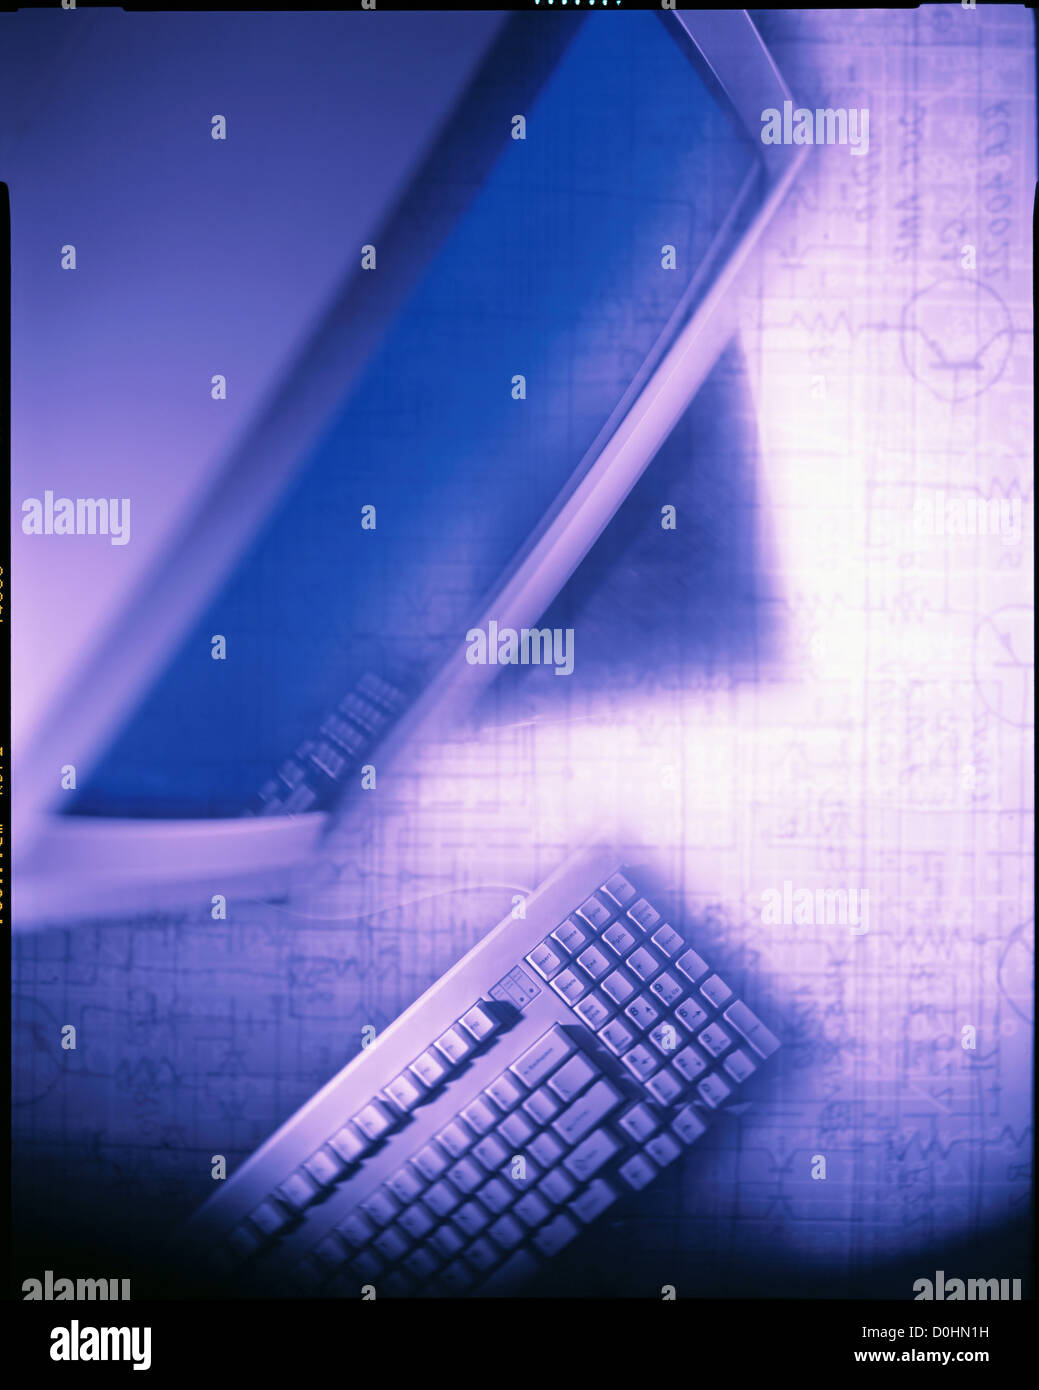 Computer Monitor and Keyboard With Schematics in the Background - Stock Image